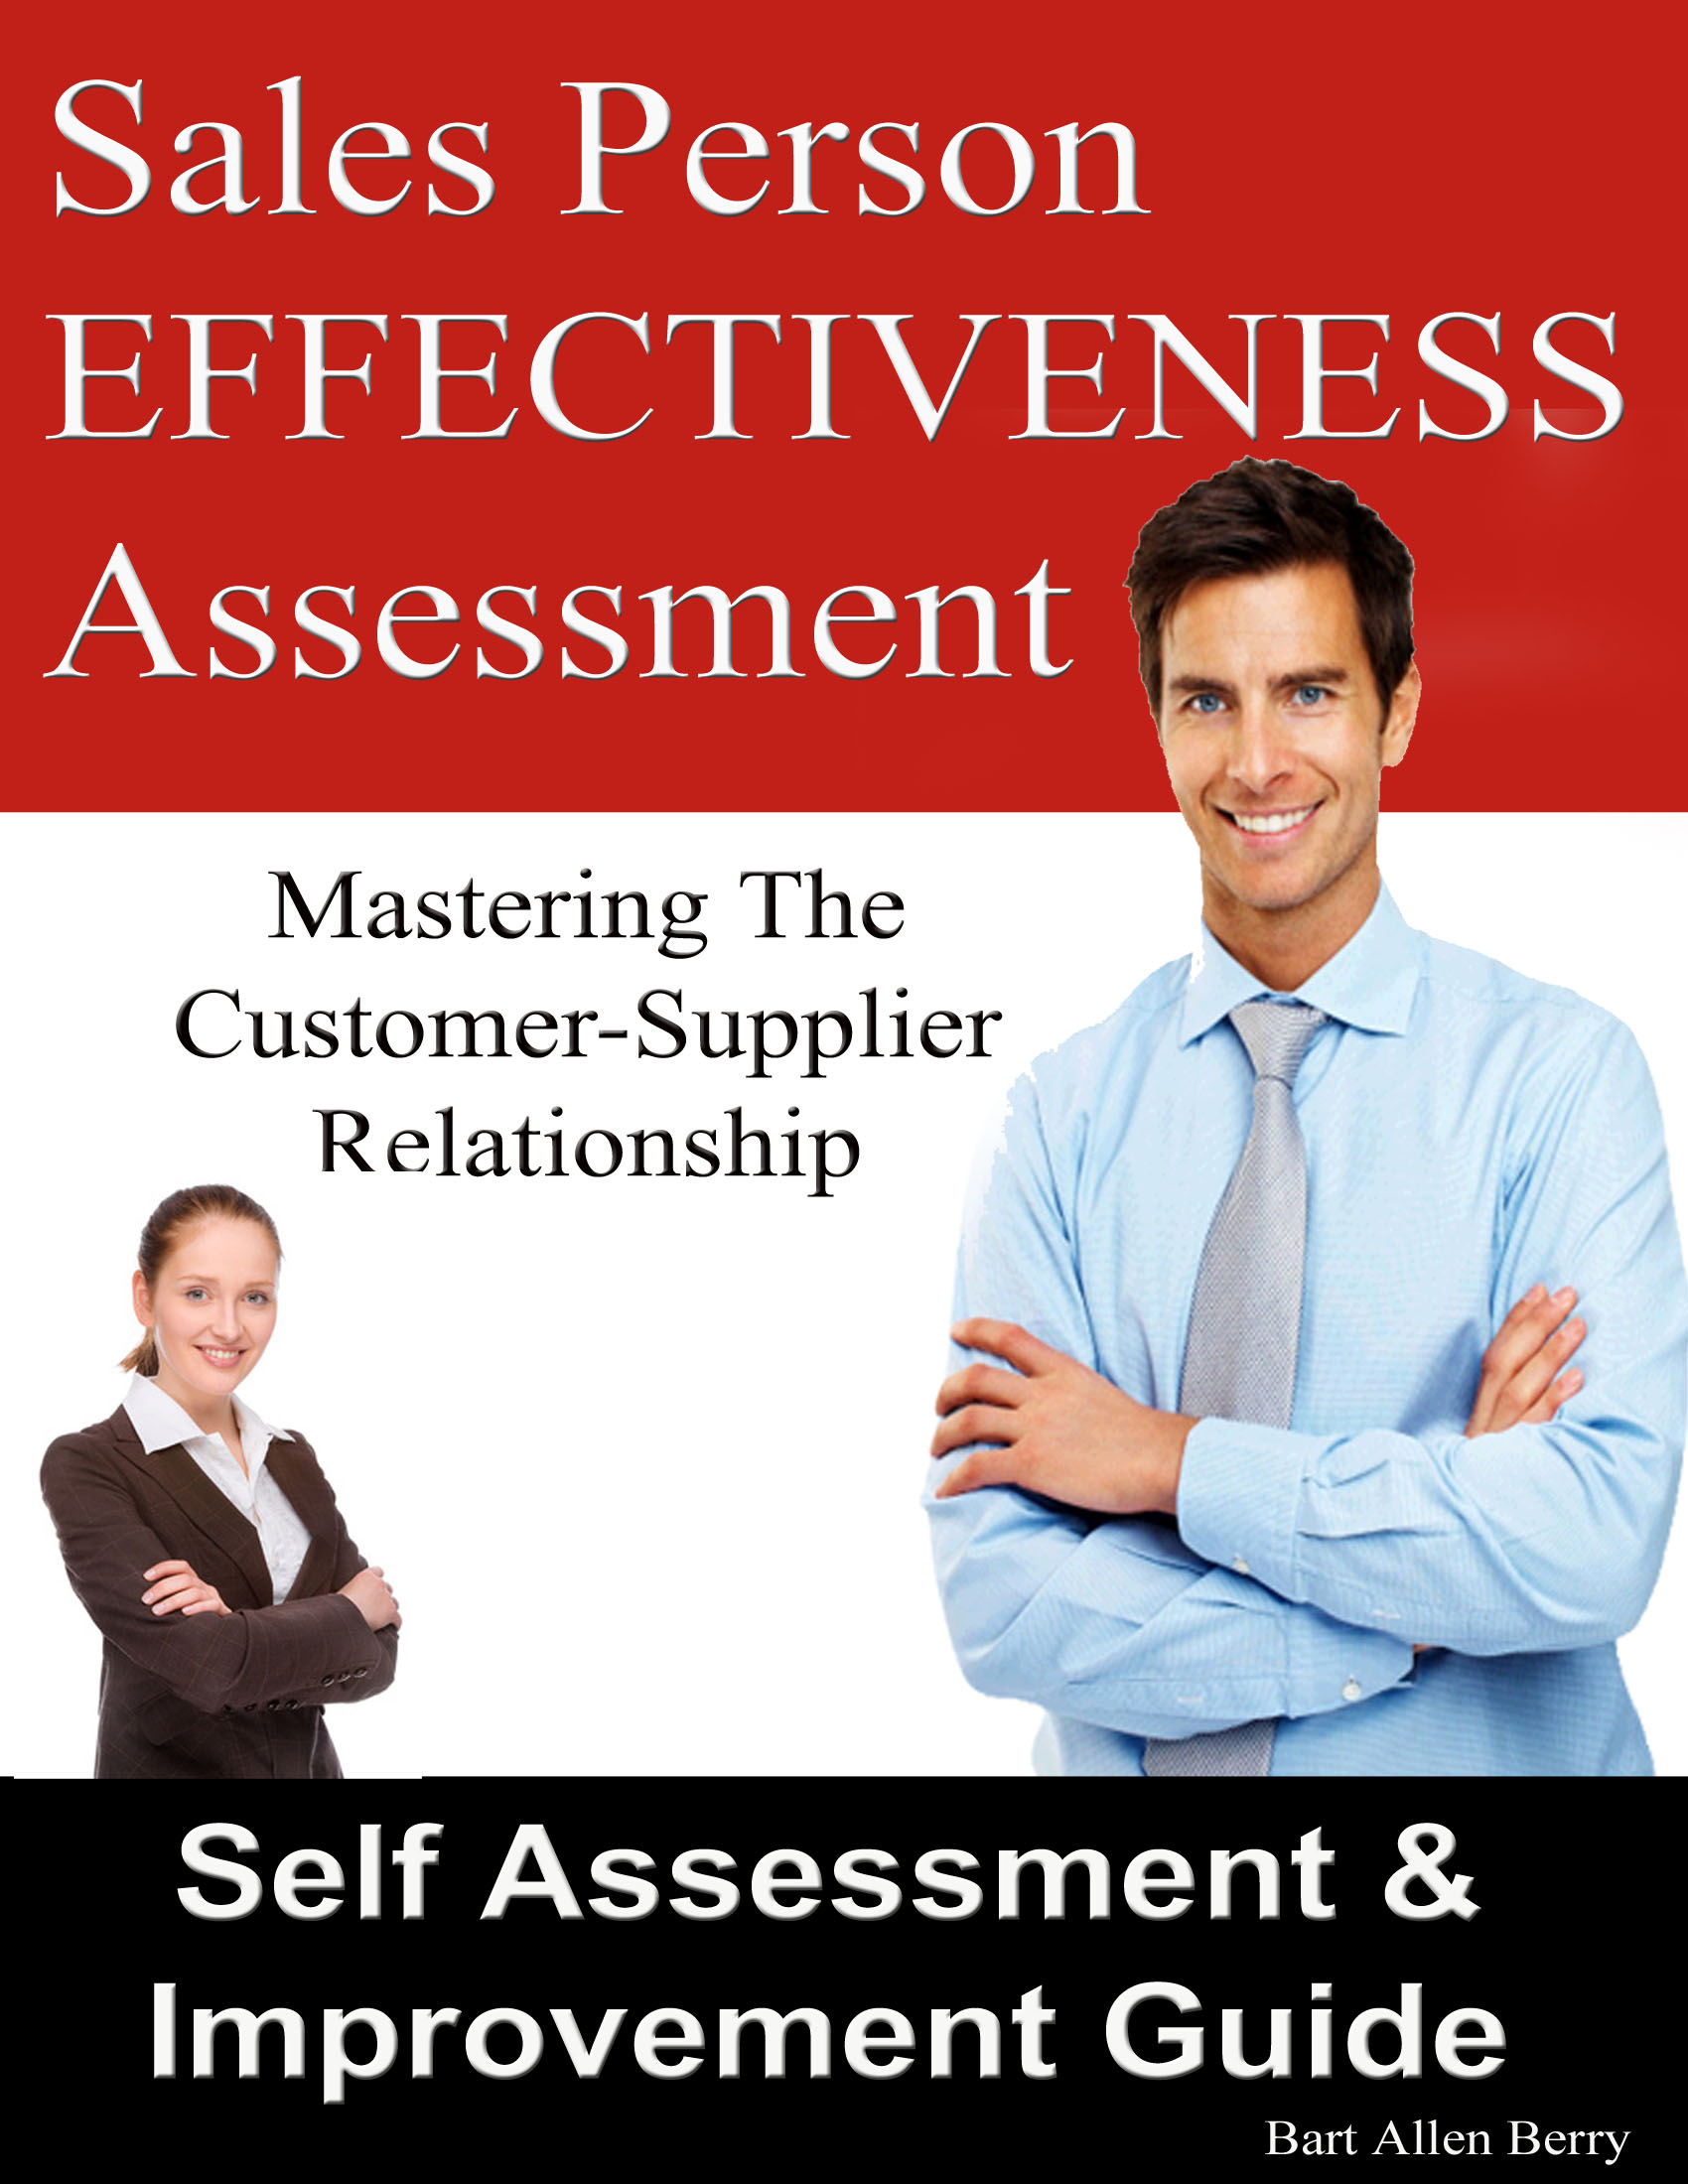 Sales Person Effectiveness Assessment